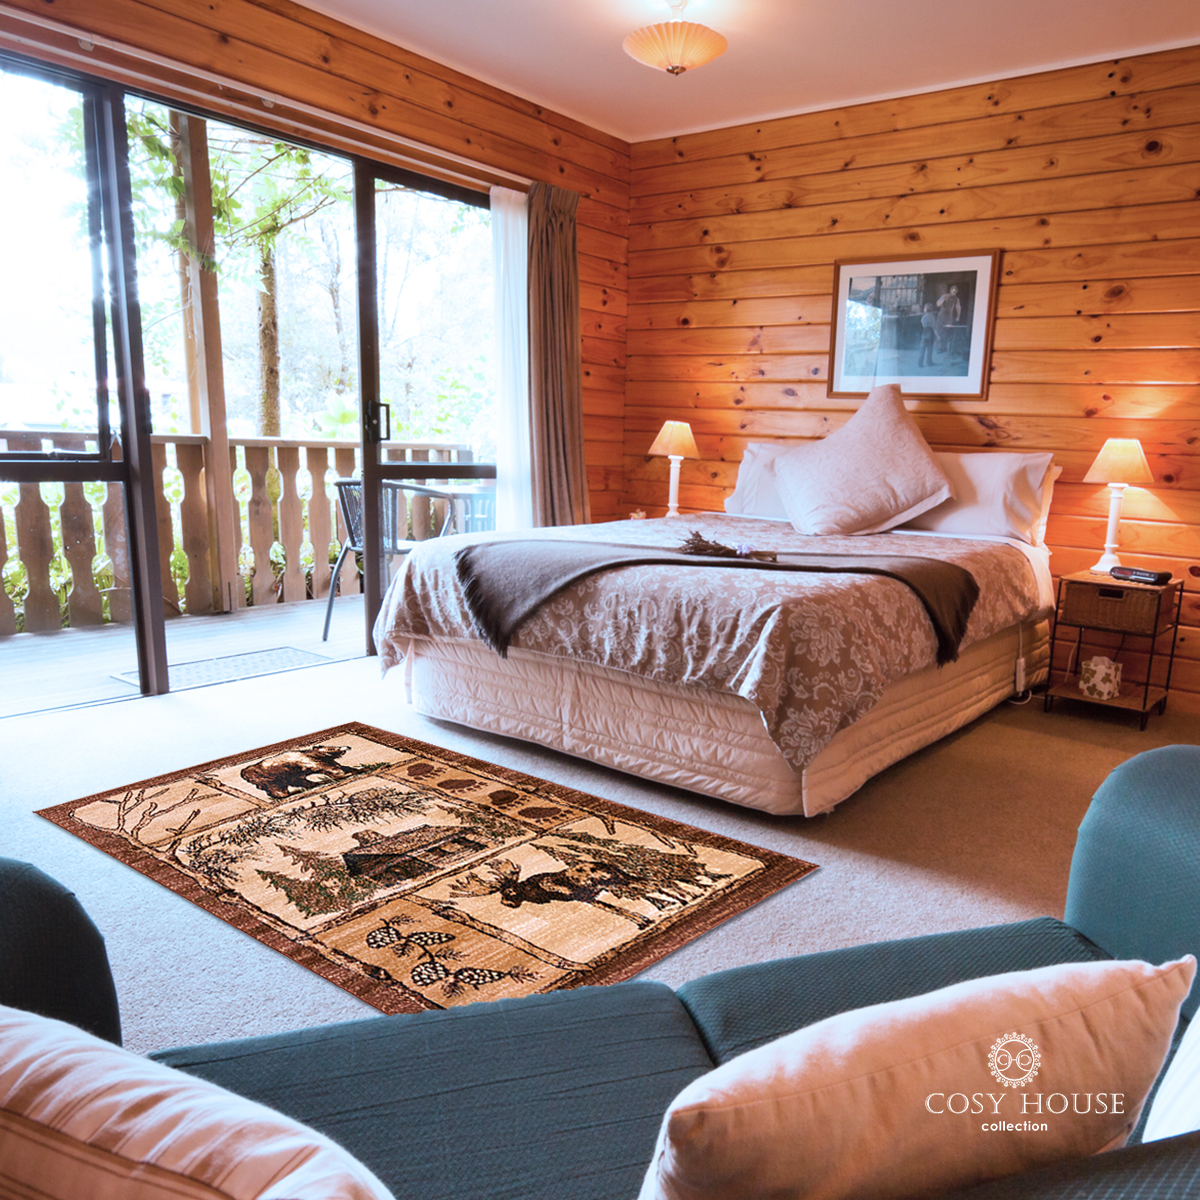 Availing quality contemporary area rugs is easier and affordable now availing quality contemporary area rugs is easier and affordable now with cosy house publicscrutiny Image collections